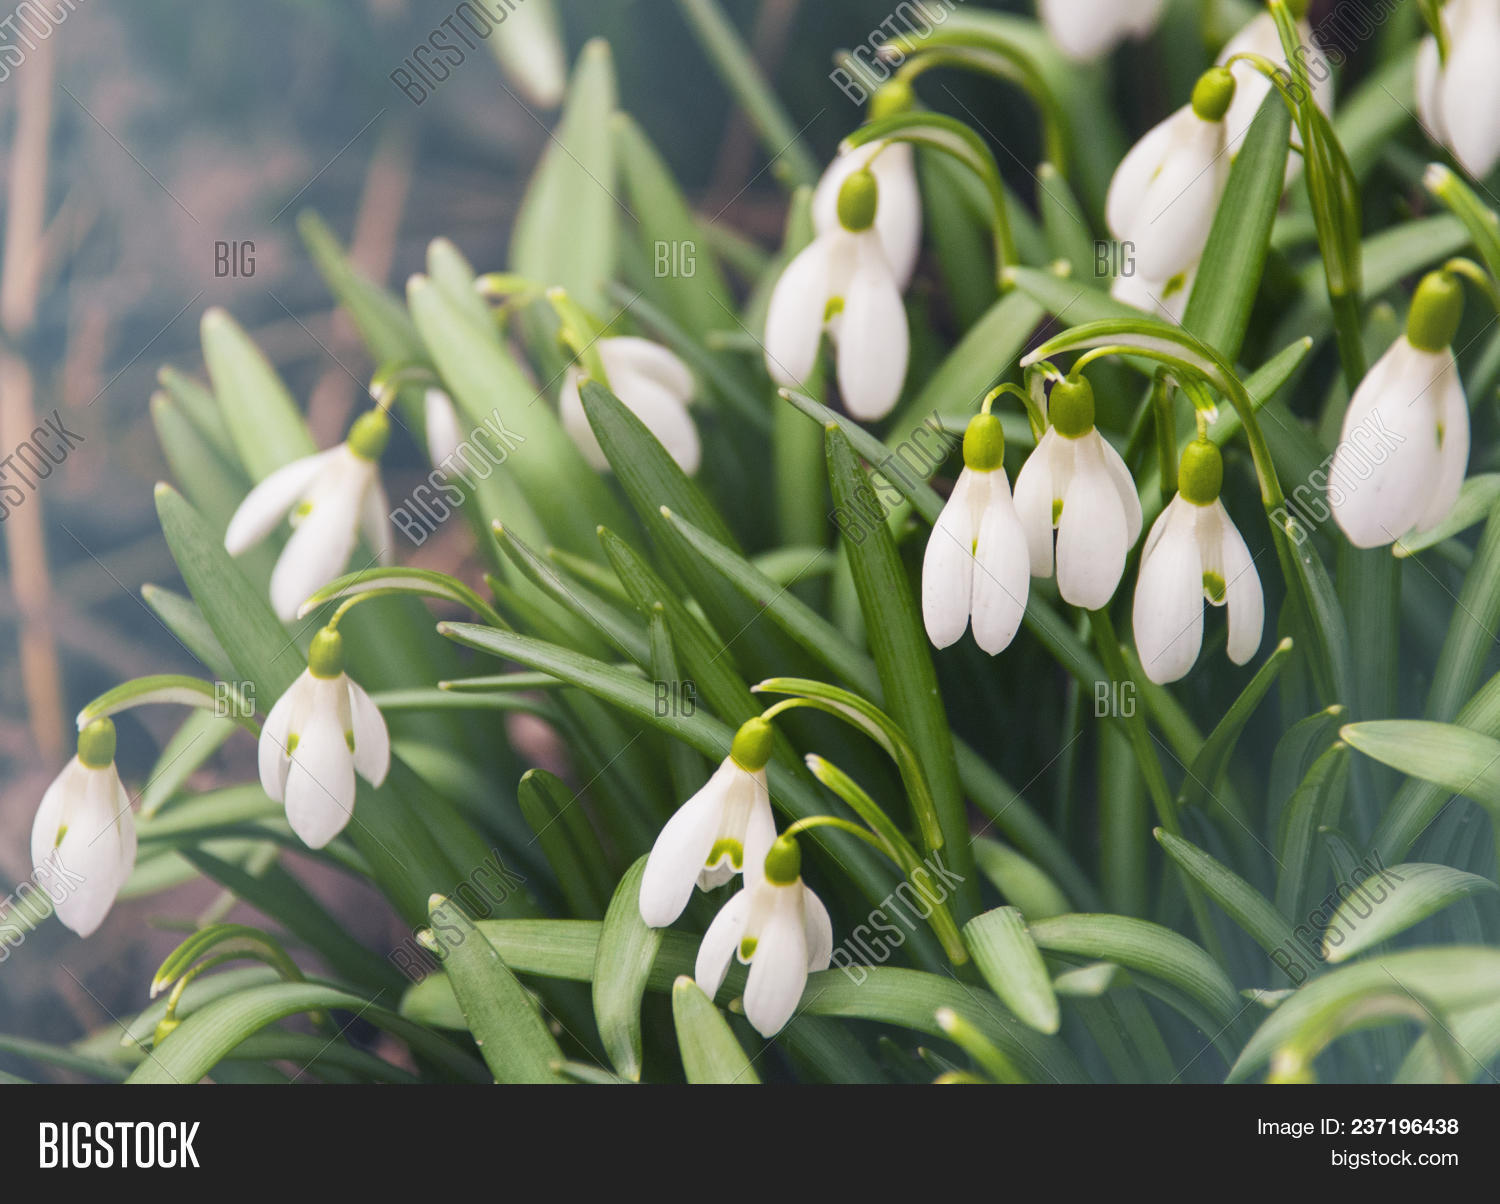 Snowdrop Flowers Green Image Photo Free Trial Bigstock